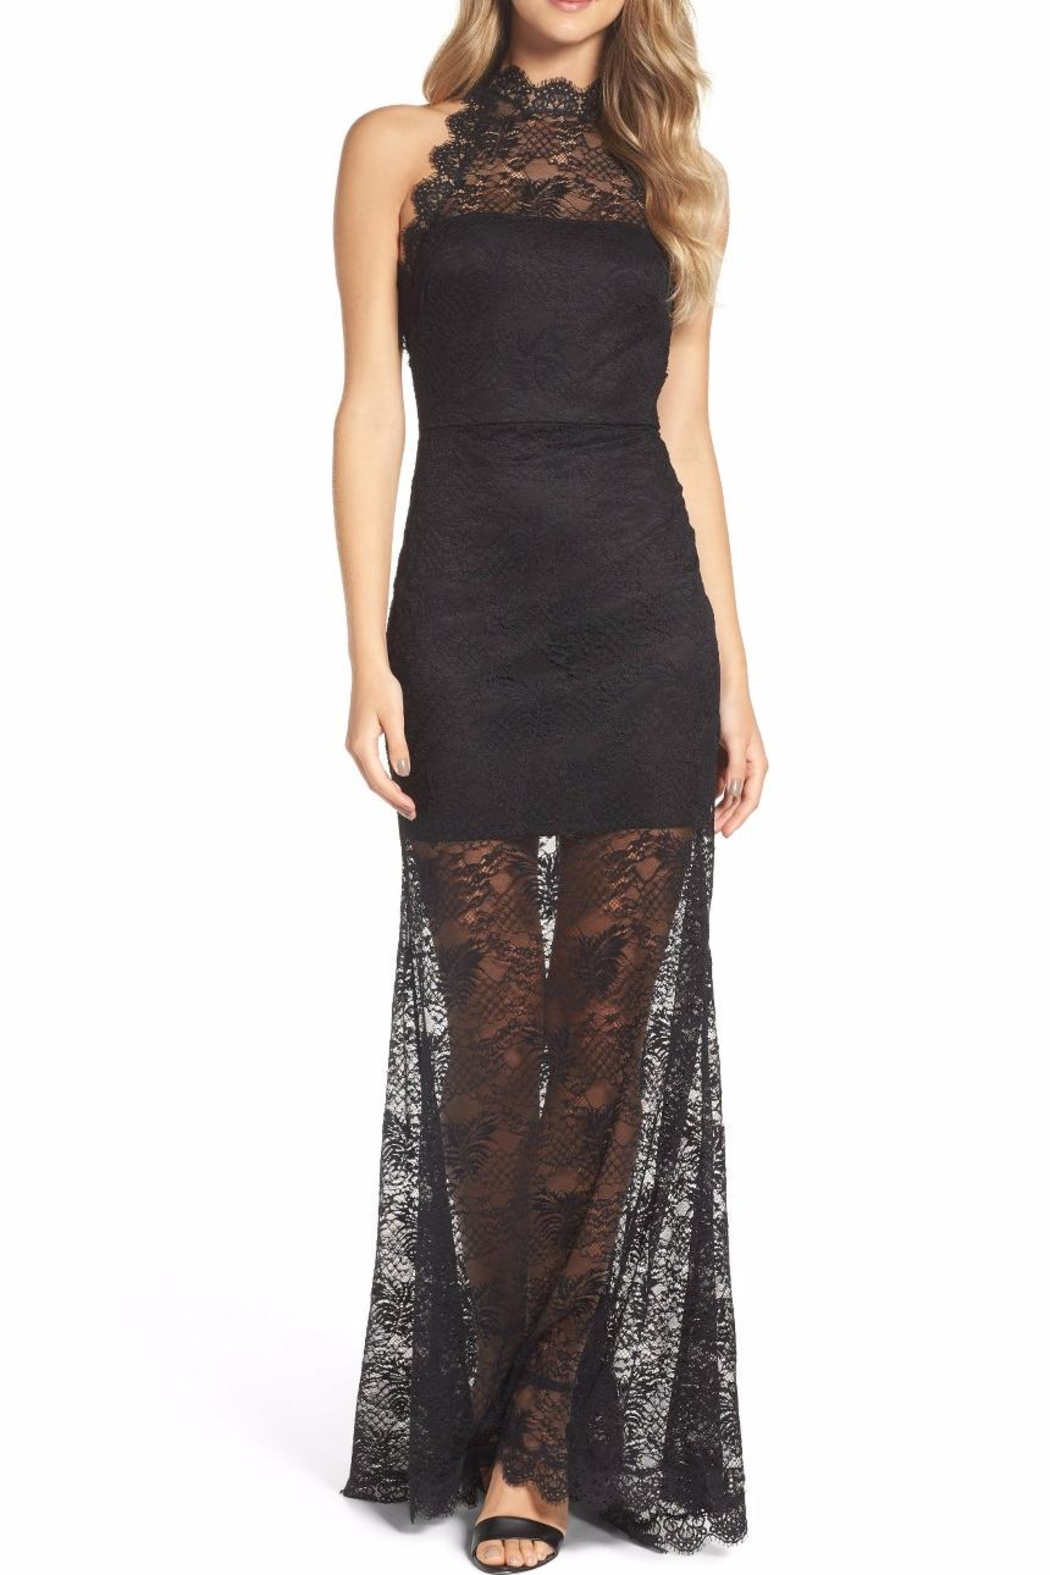 Ali & Jay Black Lace Gown - Main Image